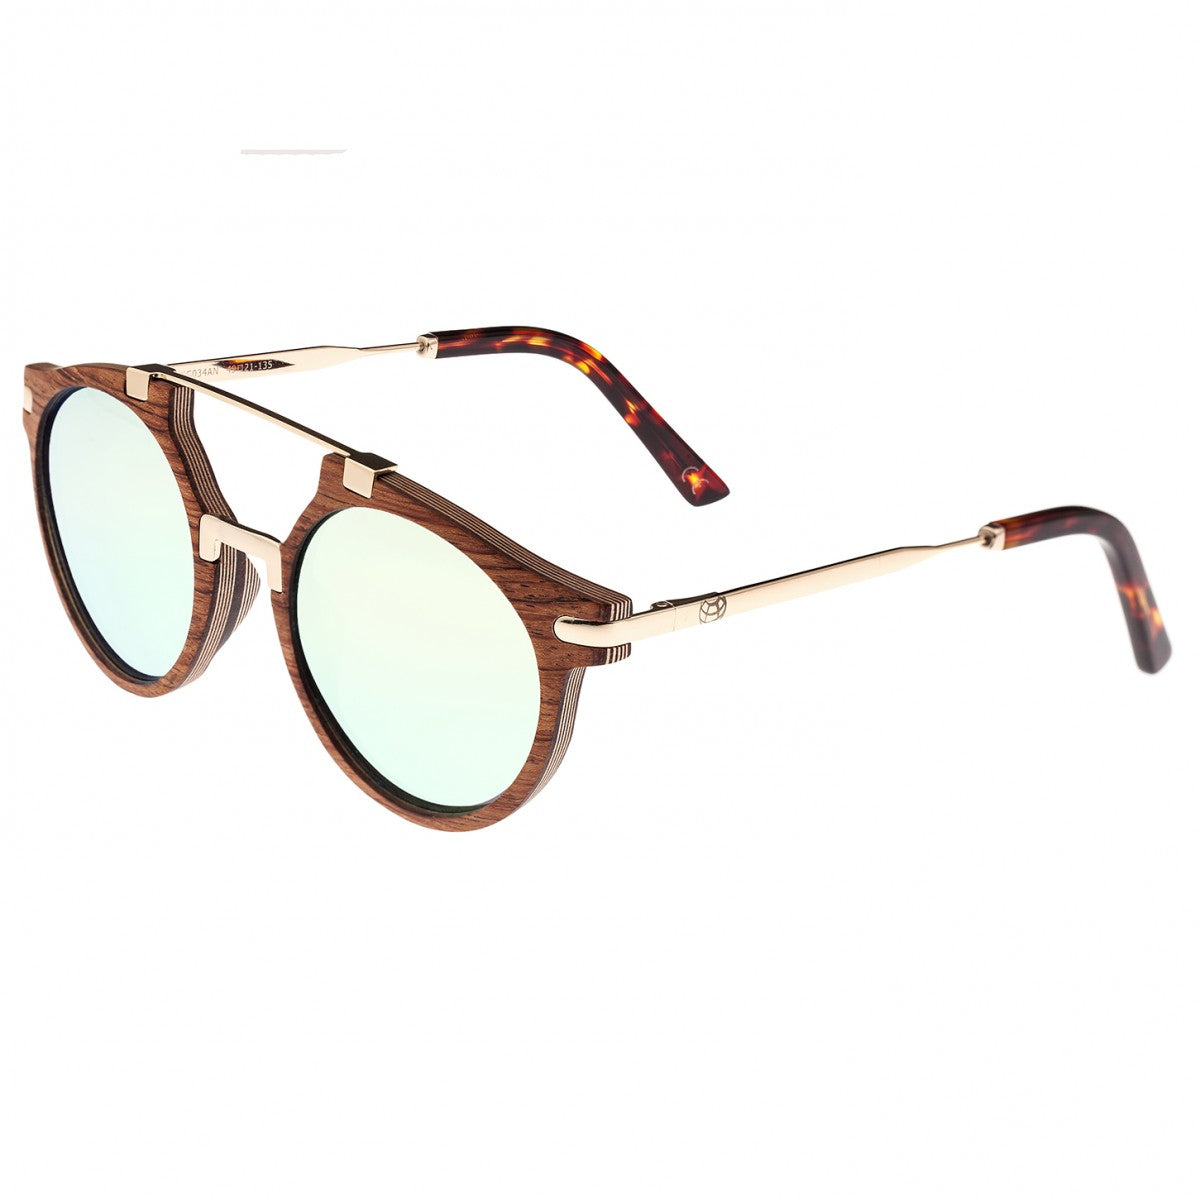 Earth Wood Petani Polarized Sunglasses - GENT.ONE